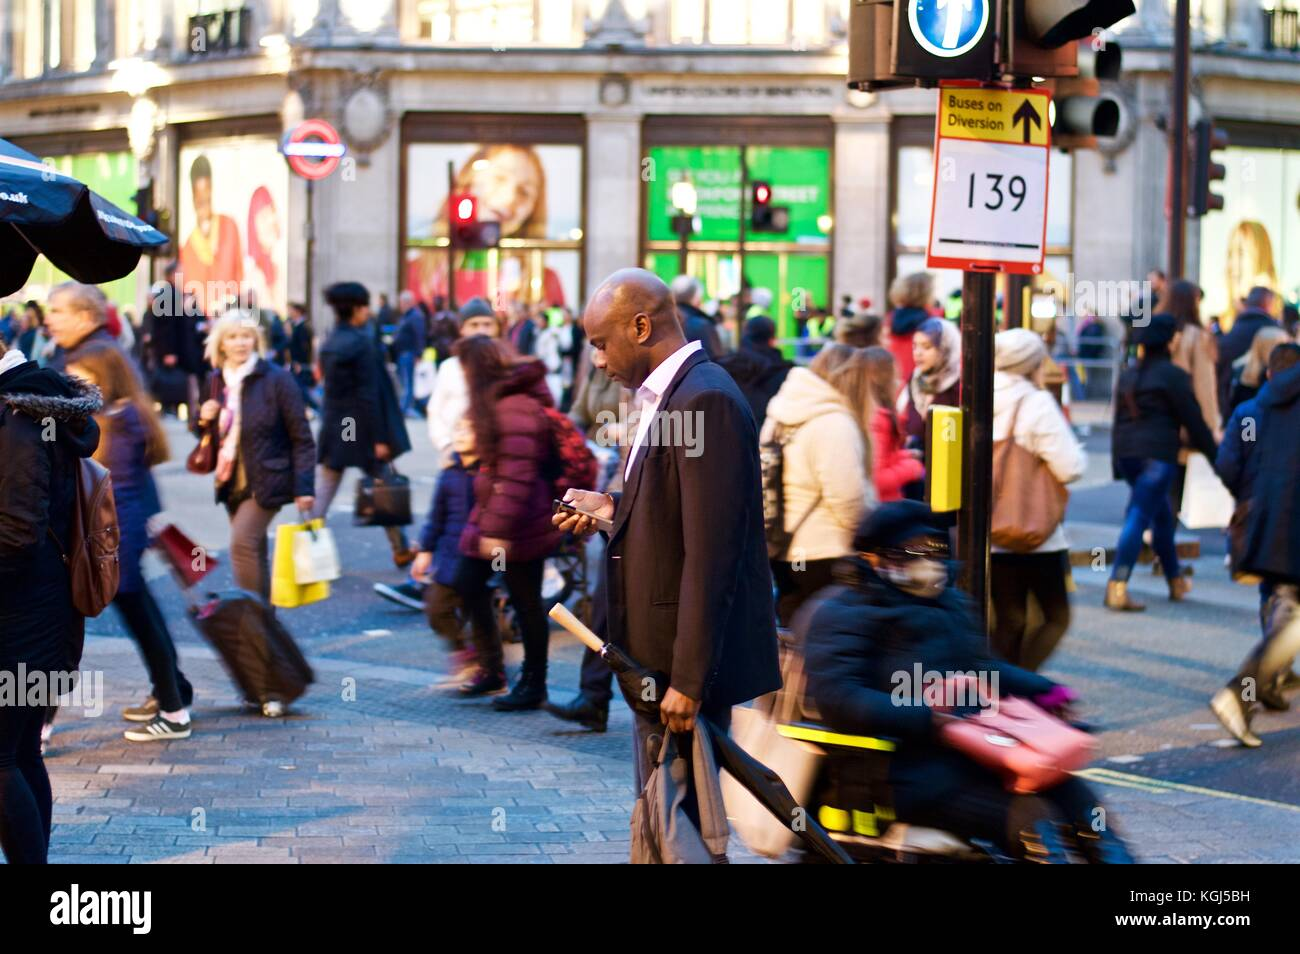 Isolated Man Busy Crowd Stockfotos & Isolated Man Busy Crowd Bilder ...